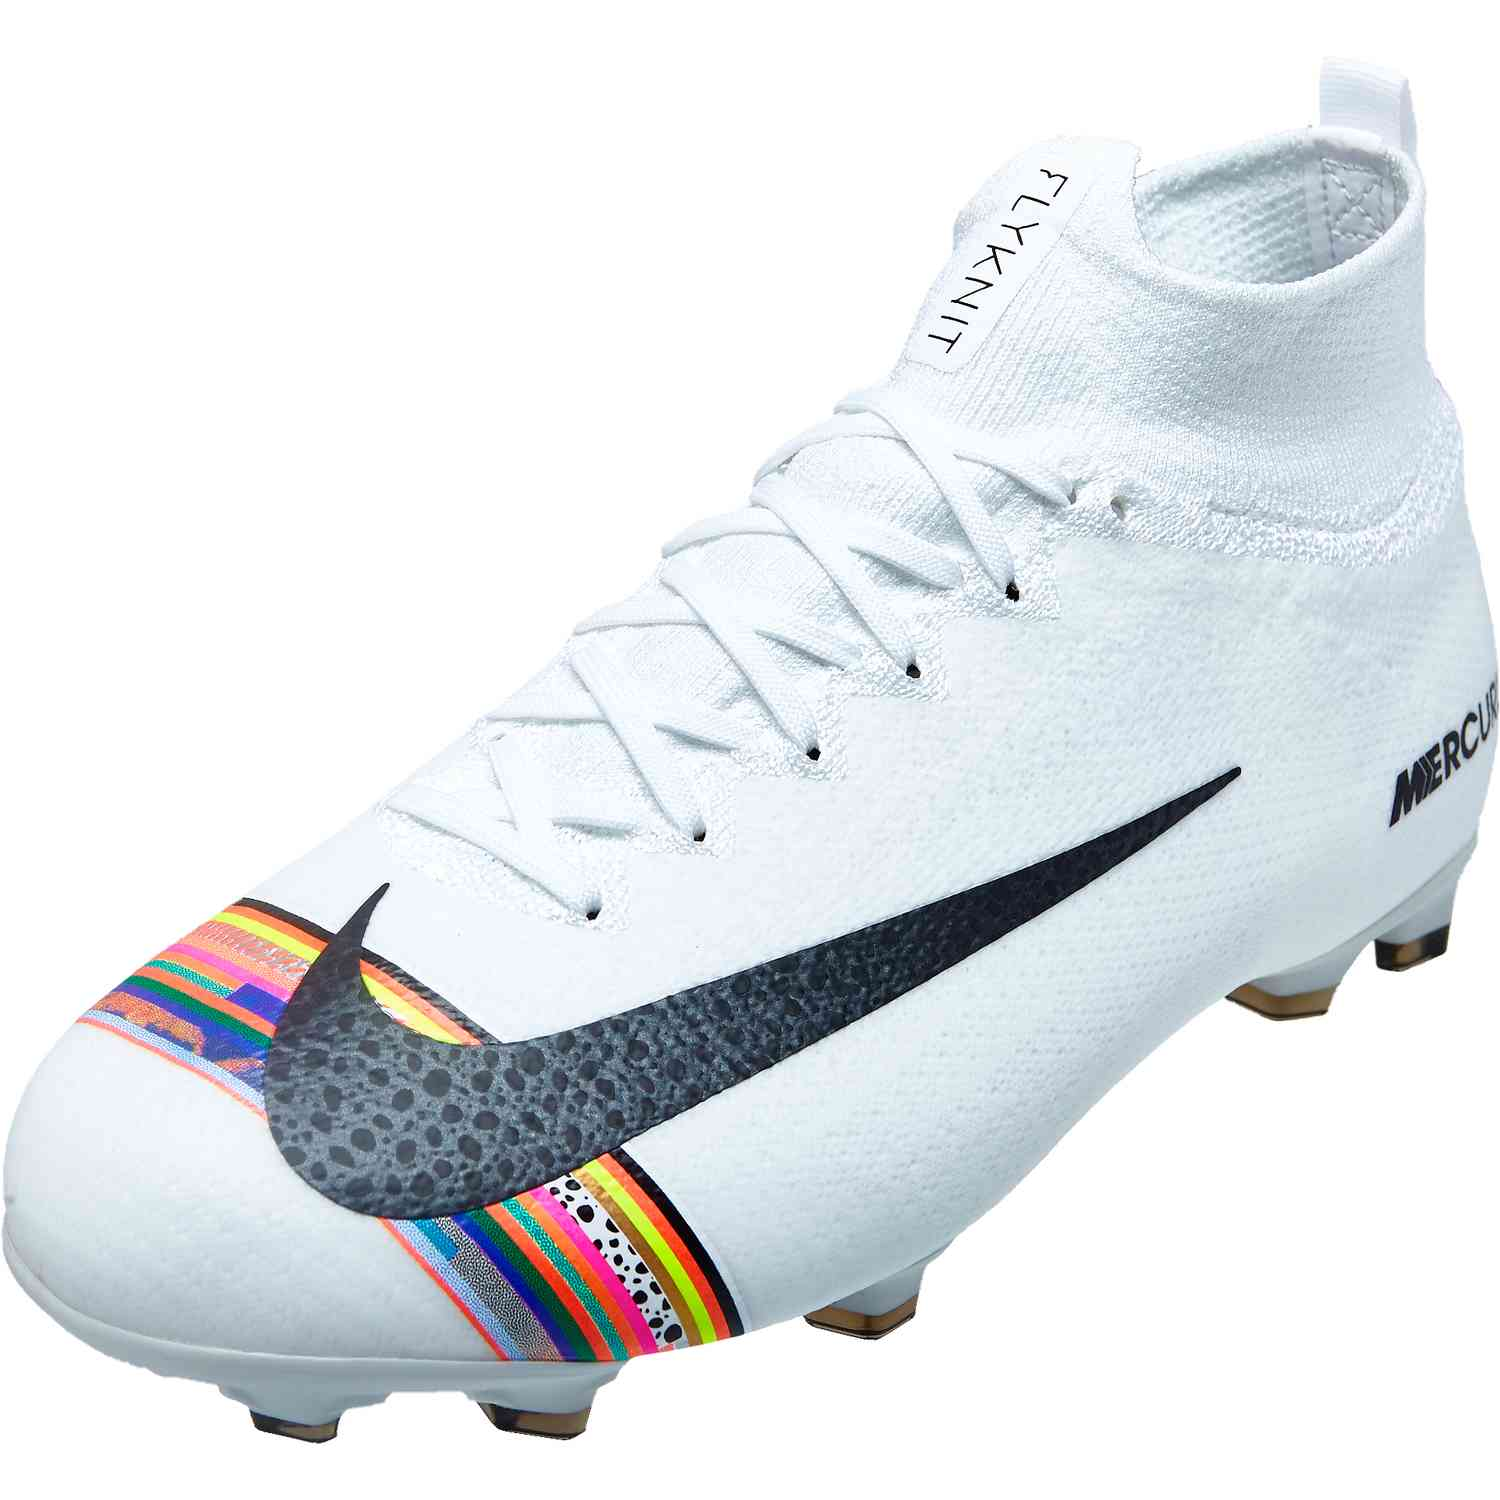 2140ee6c2 Kids Nike Mercurial Superfly 6 Elite FG - Level Up - SoccerPro